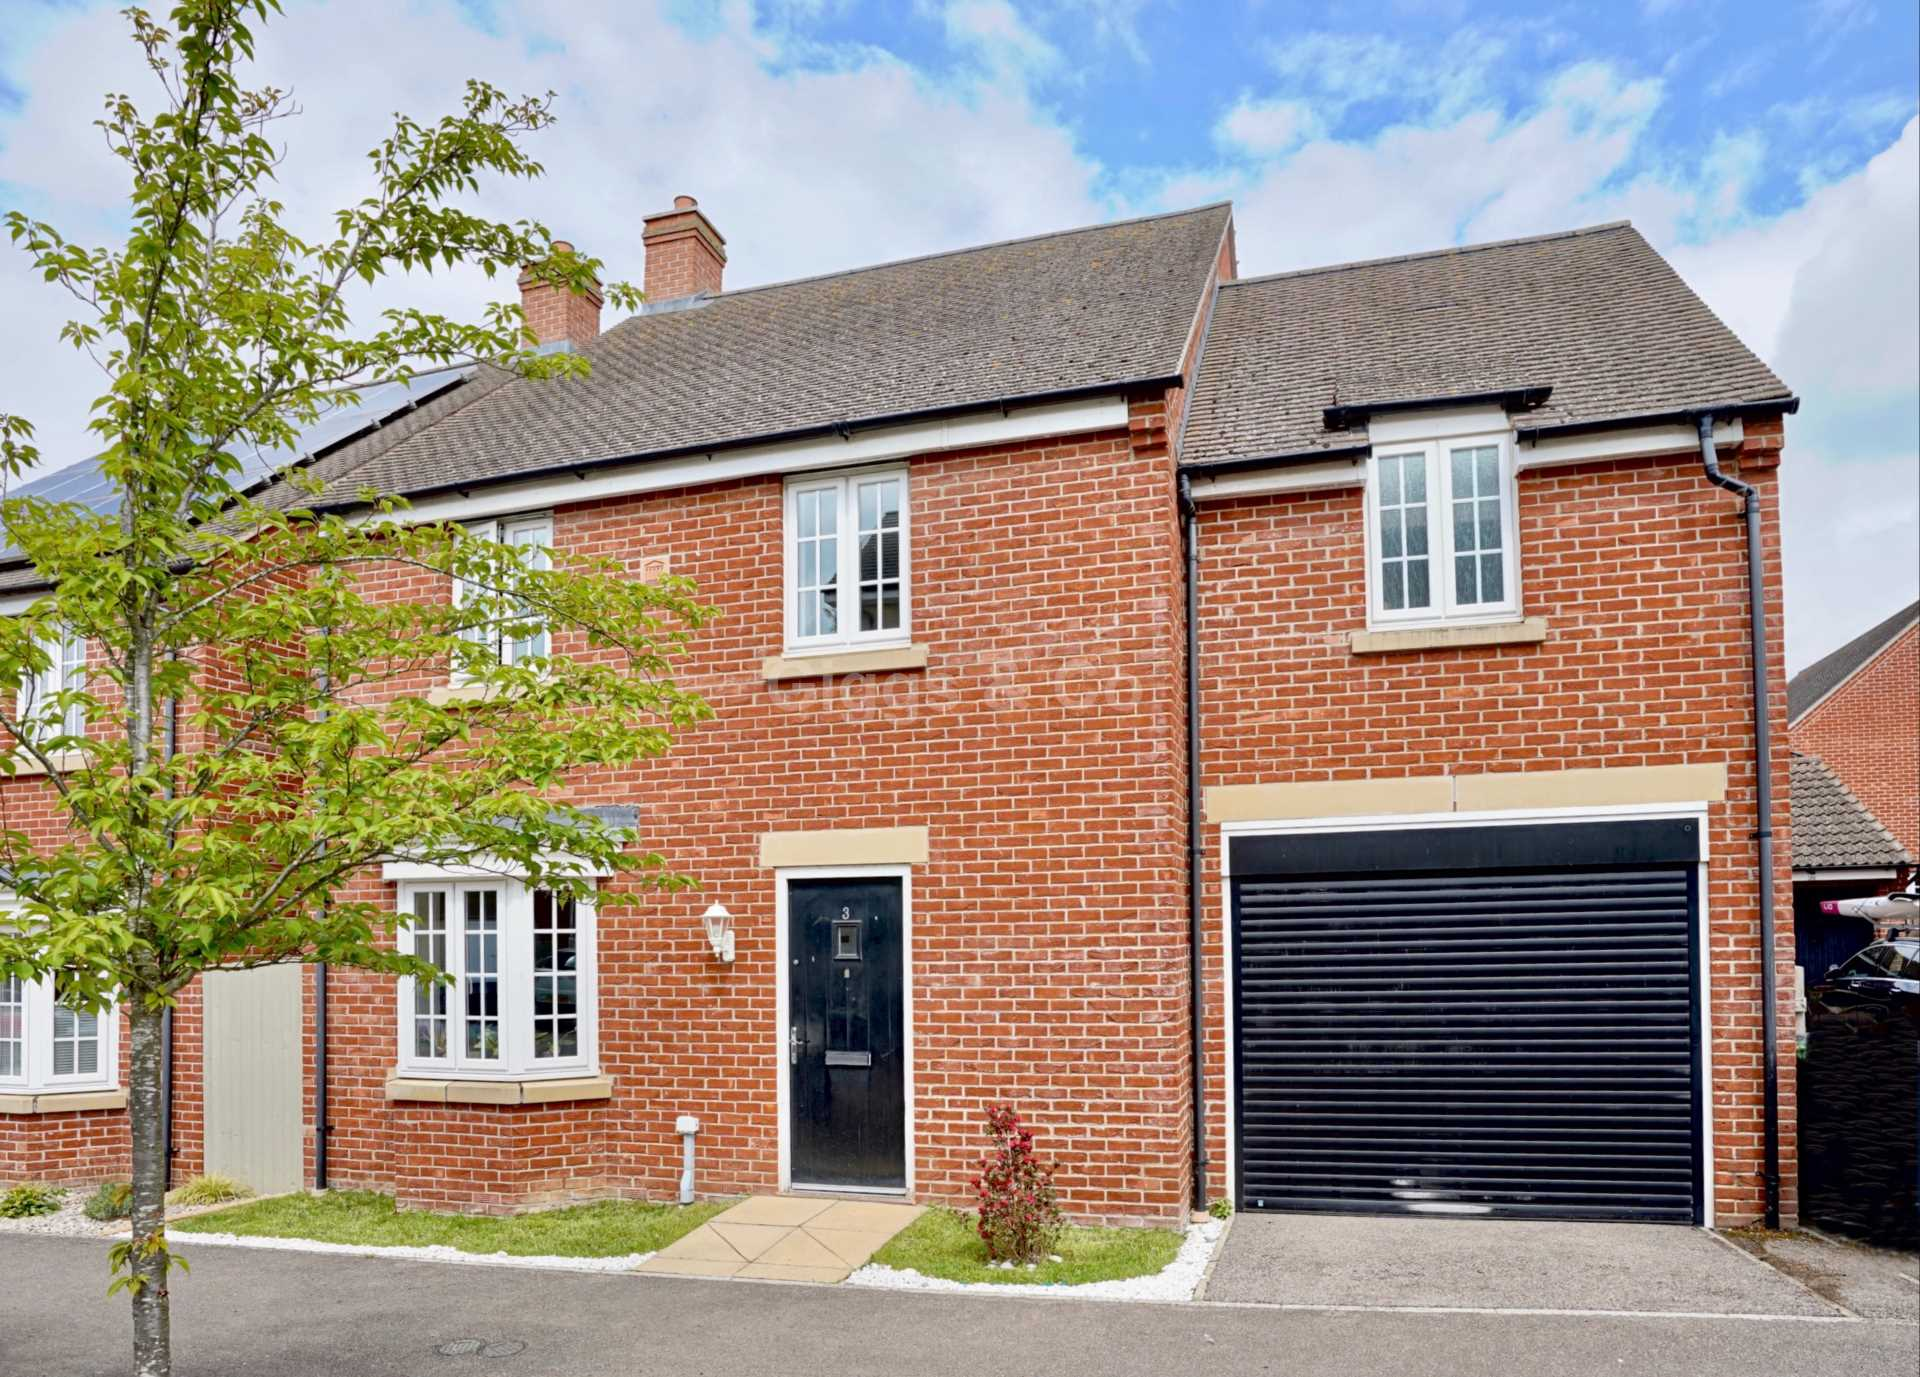 4 bed detached house to rent in Whiston Way, PE19